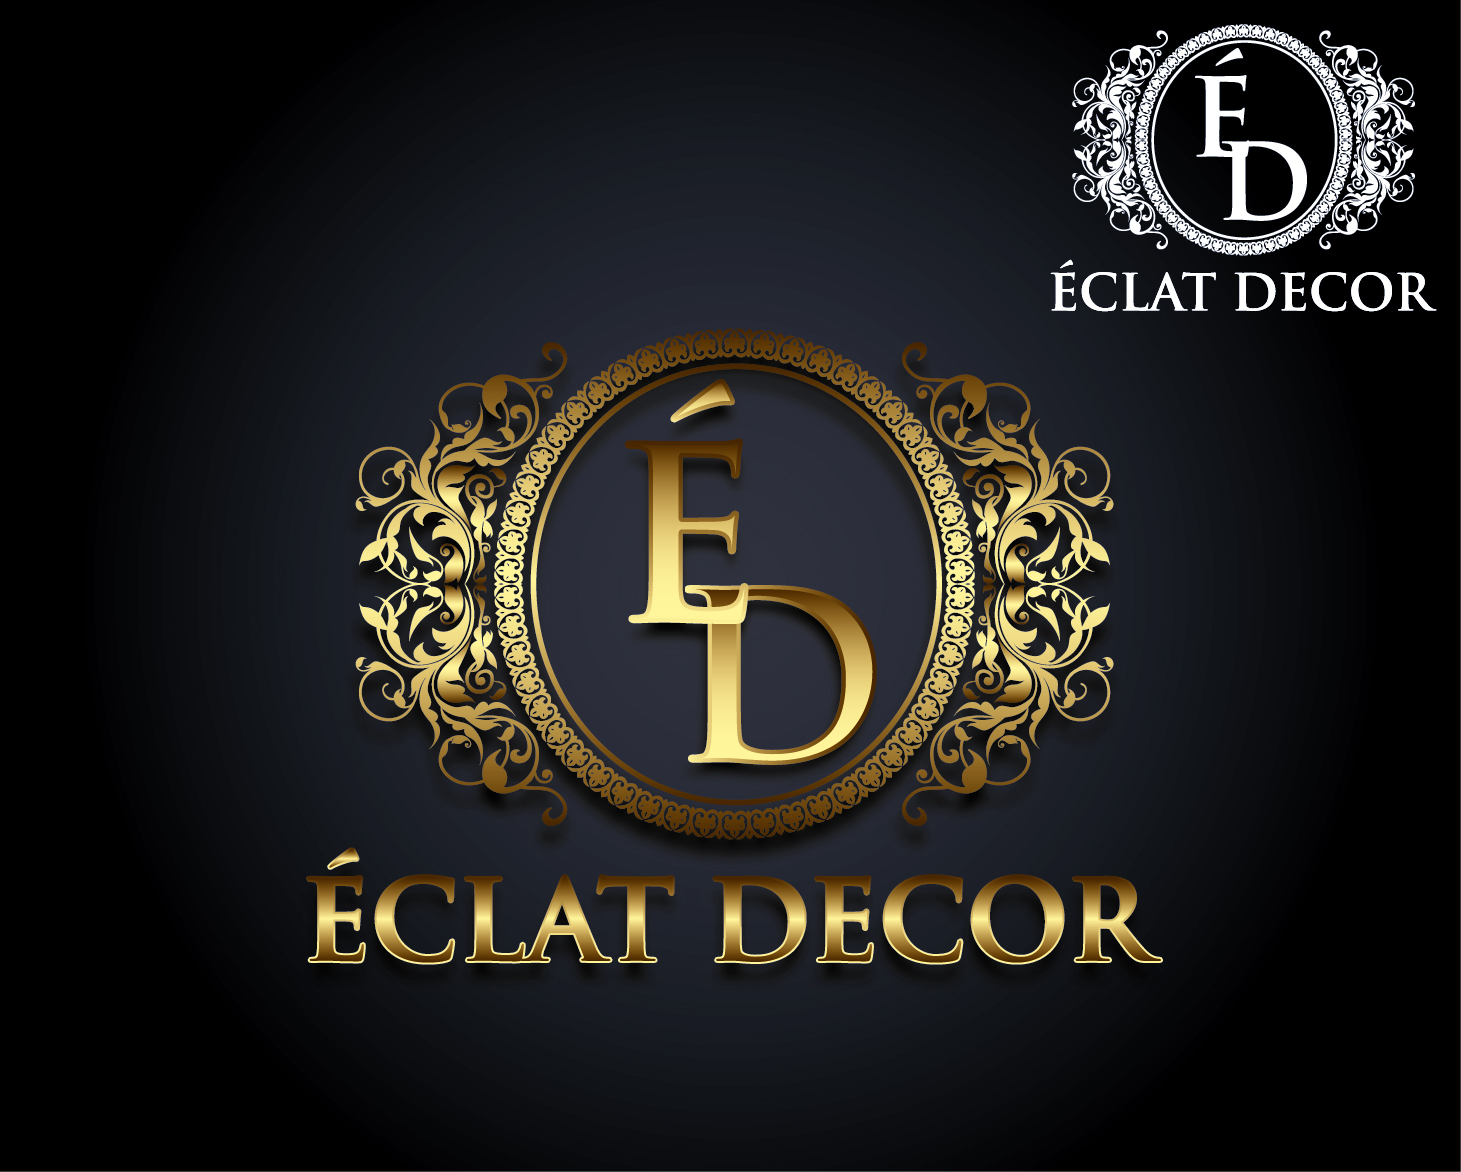 Logo Design by VENTSISLAV KOVACHEV - Entry No. 62 in the Logo Design Contest Imaginative Logo Design for Éclat Decor.